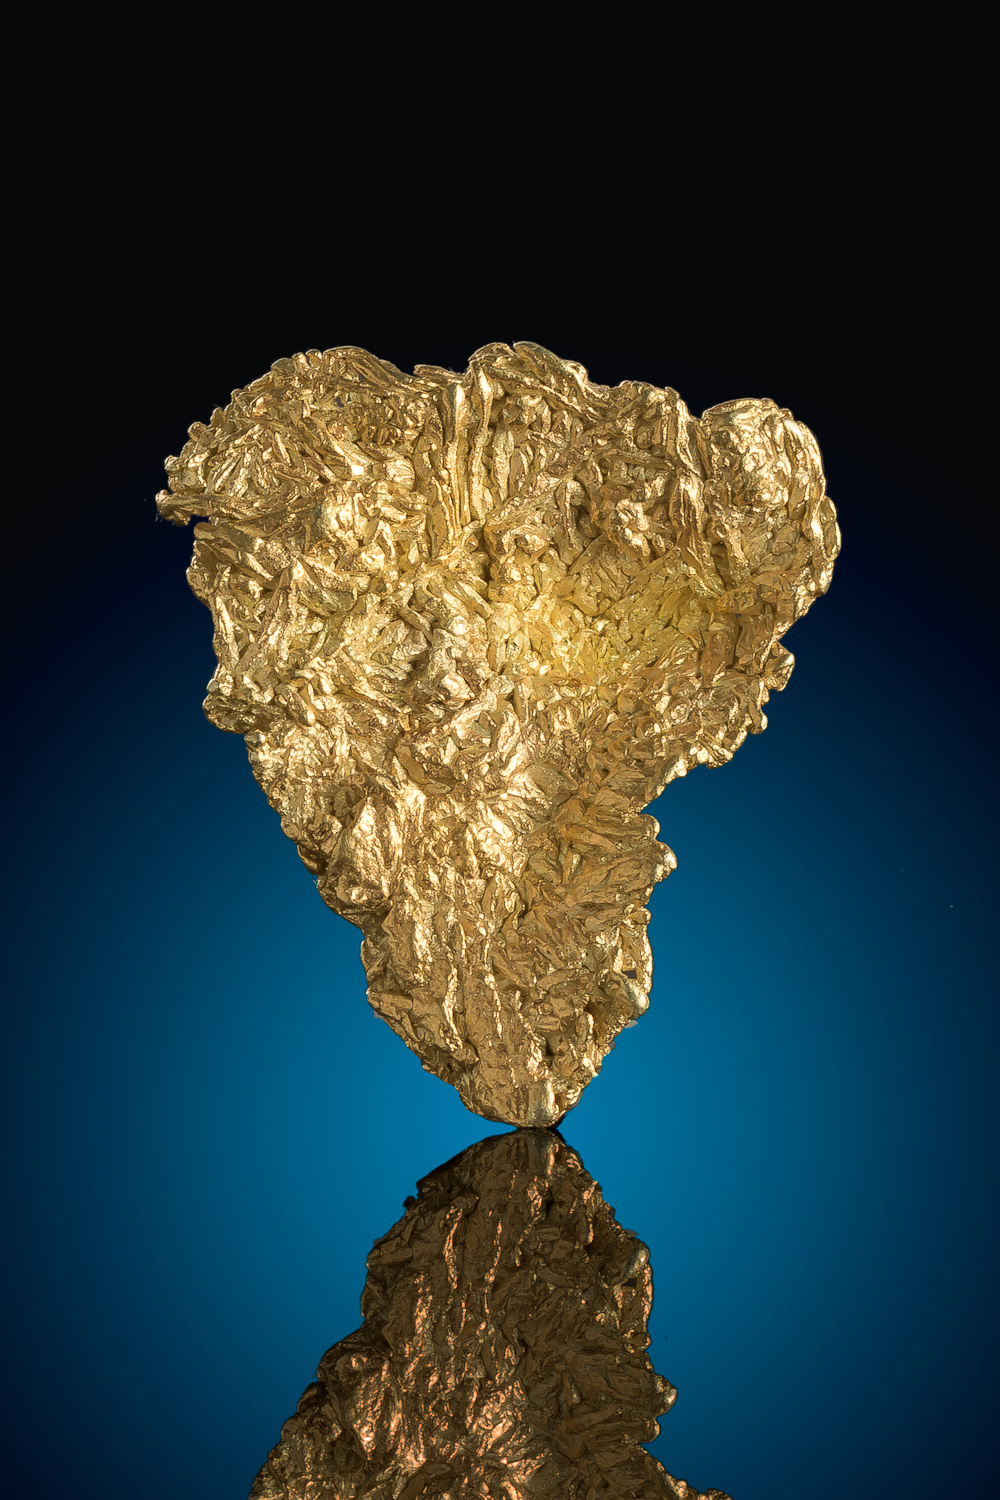 Liberty Gold Mine - Wire Cluster Specimen